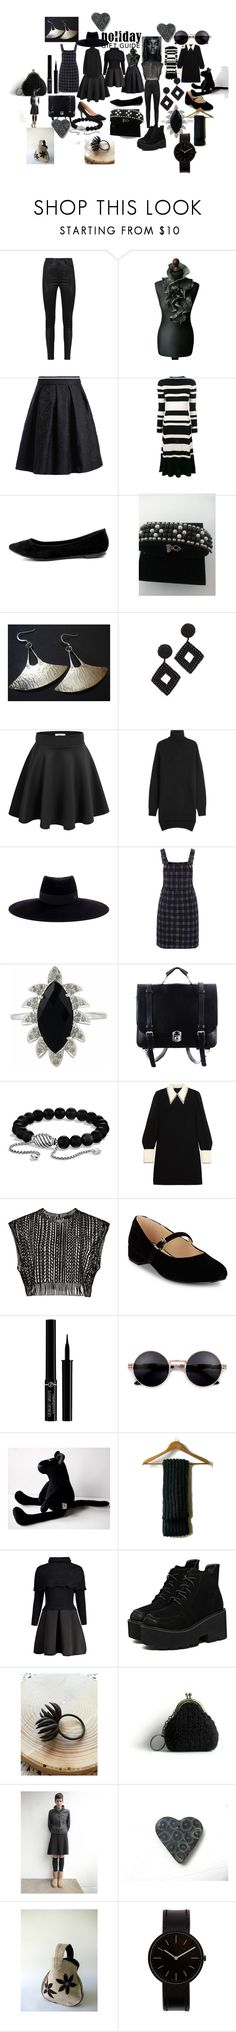 """""""BLACK  PARTY"""" by talma-vardi ❤ liked on Polyvore featuring Thot, Manokhi, Proenza Schouler, Breckelle's, Kenneth Jay Lane, Isabel Marant, Maison Michel, Red Herring, Meghna Jewels and David Yurman"""